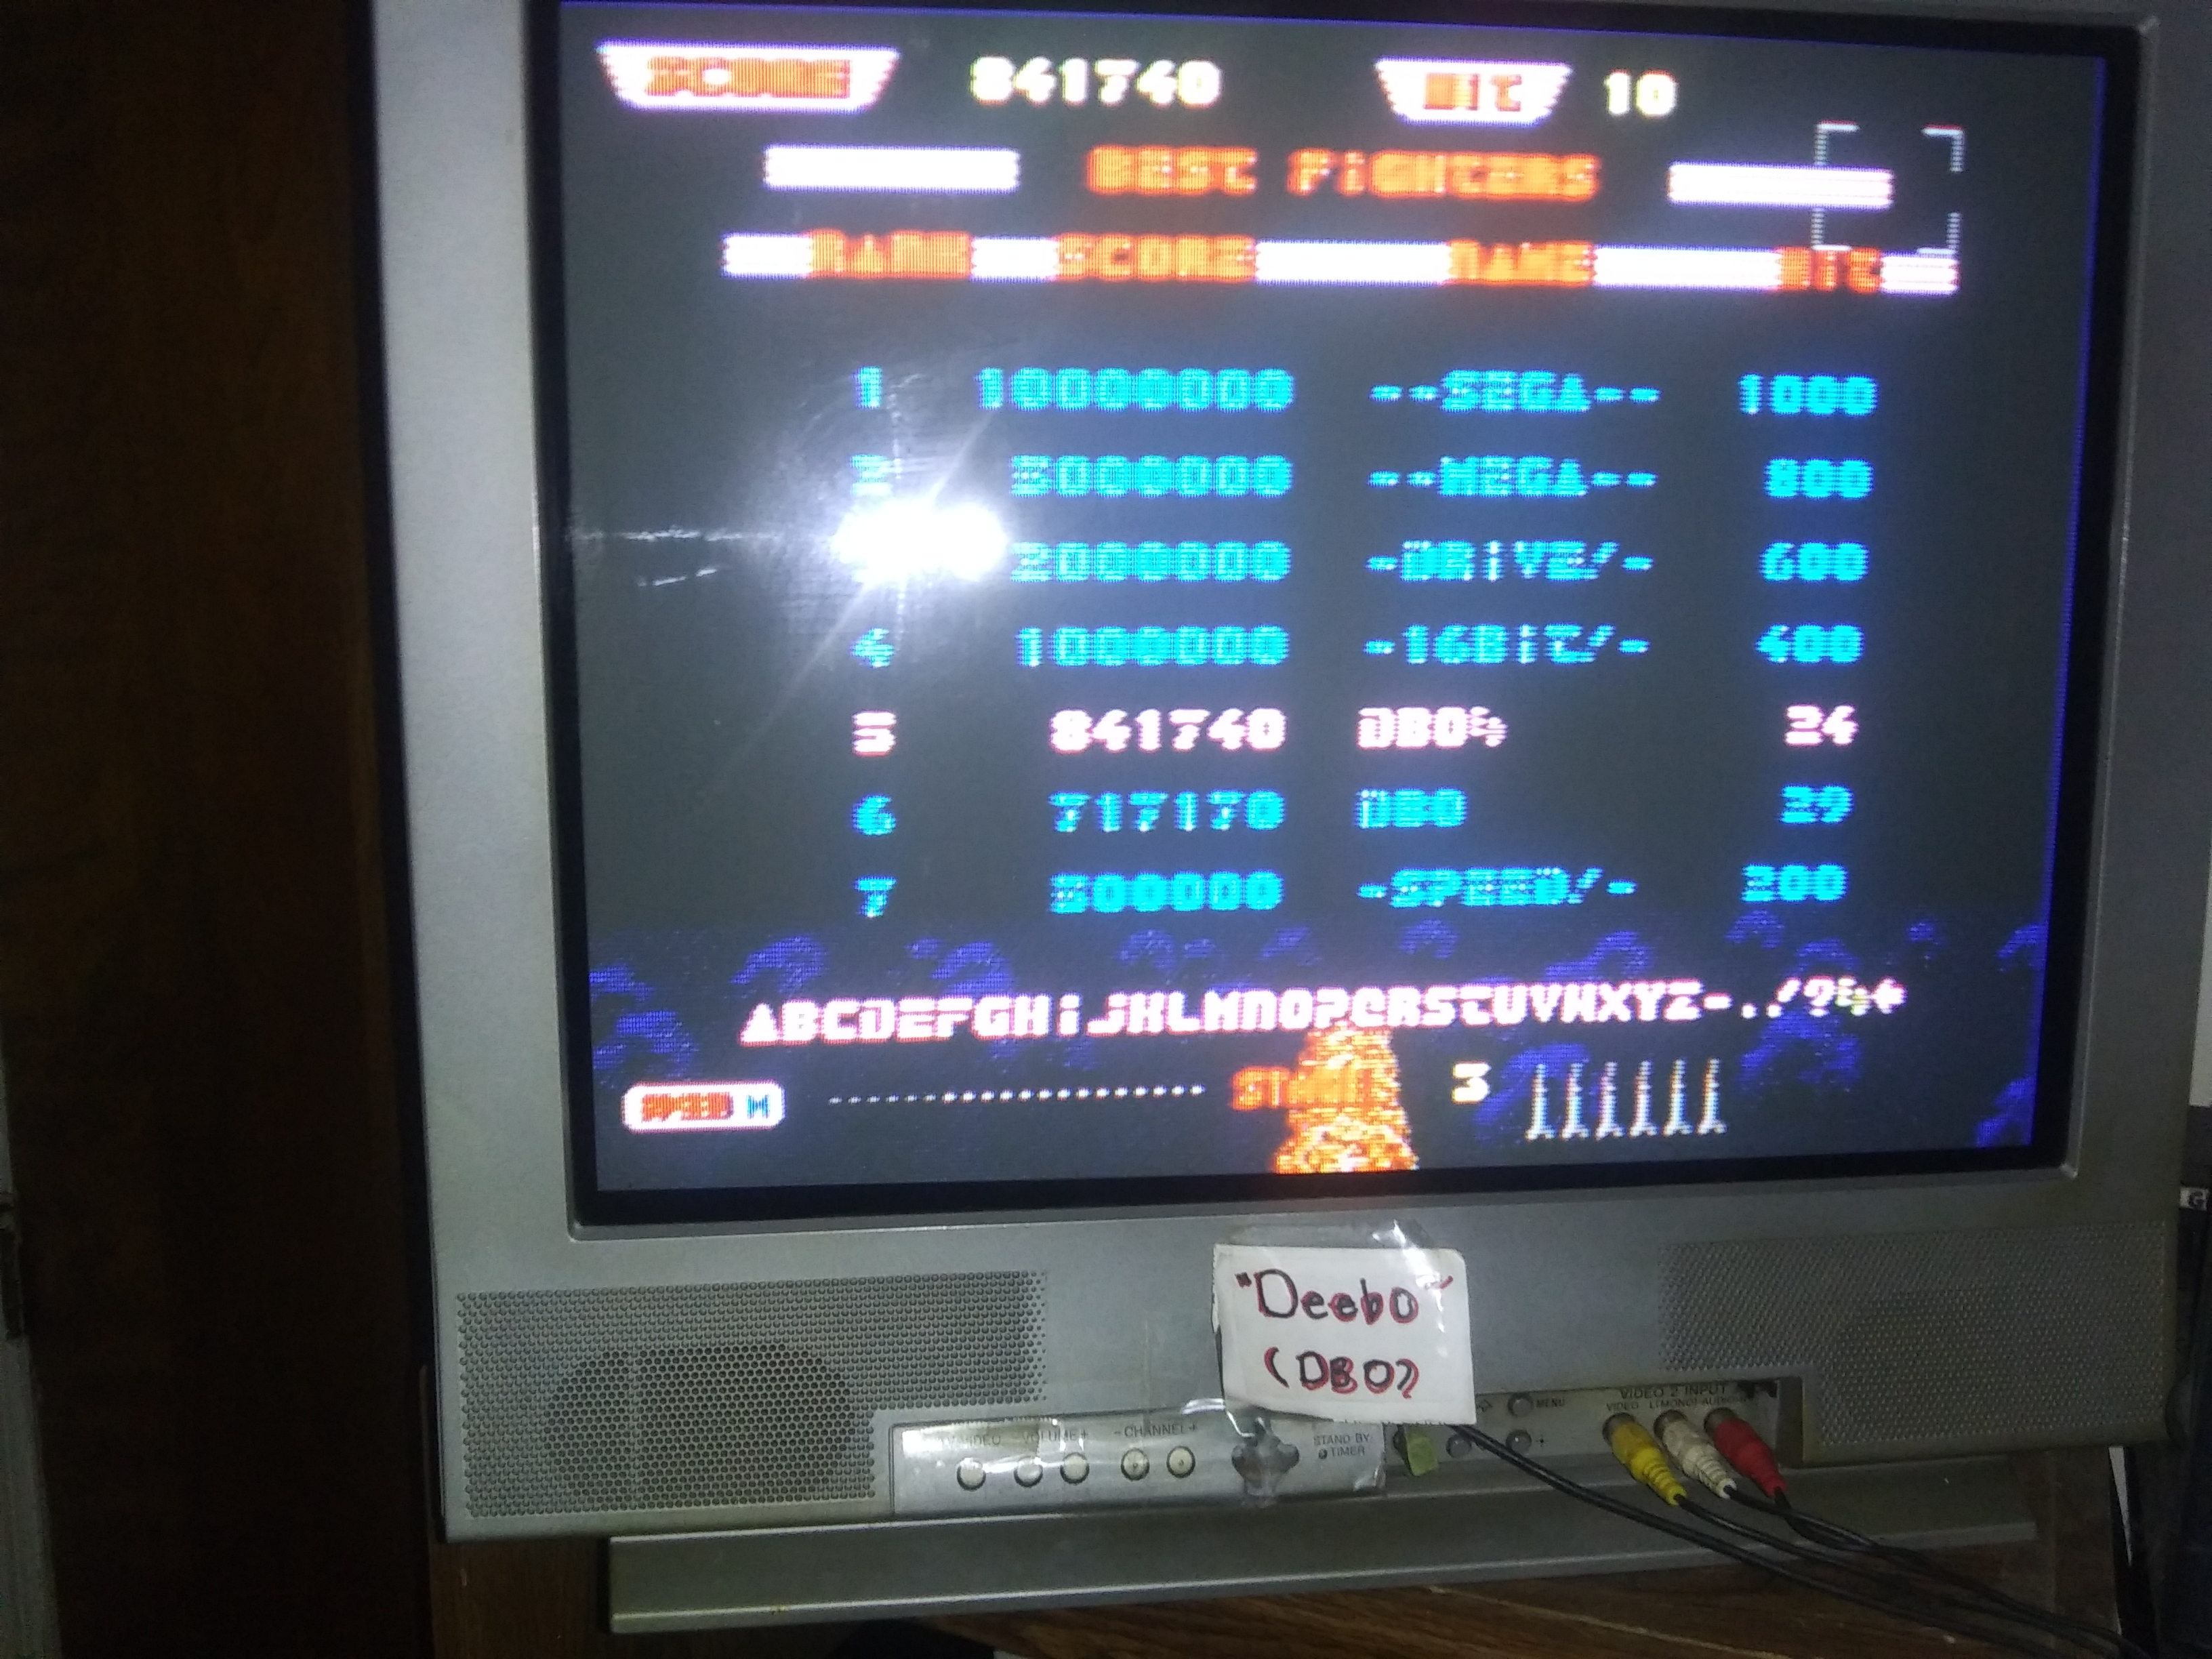 Deebo: After Burner 2 [Hard] (Sega Genesis / MegaDrive) 841,740 points on 2019-07-17 00:18:00